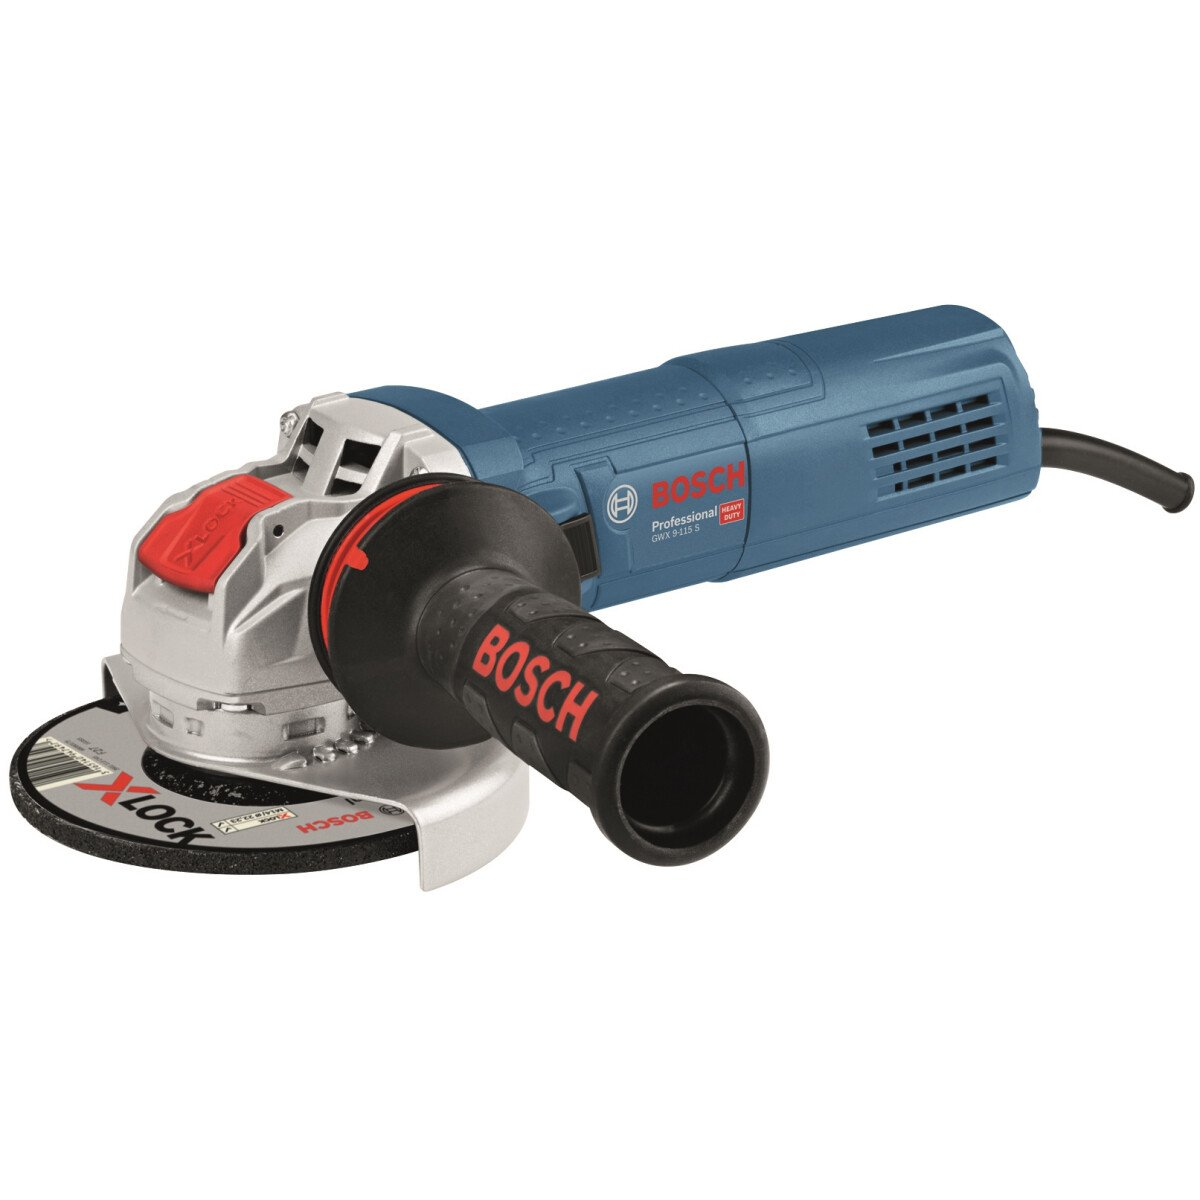 """Bosch GWX 9-115 S 4.1/2""""/115mm 900W X-LOCK Angle Grinder with Anti-Vibration Handle in Carton"""